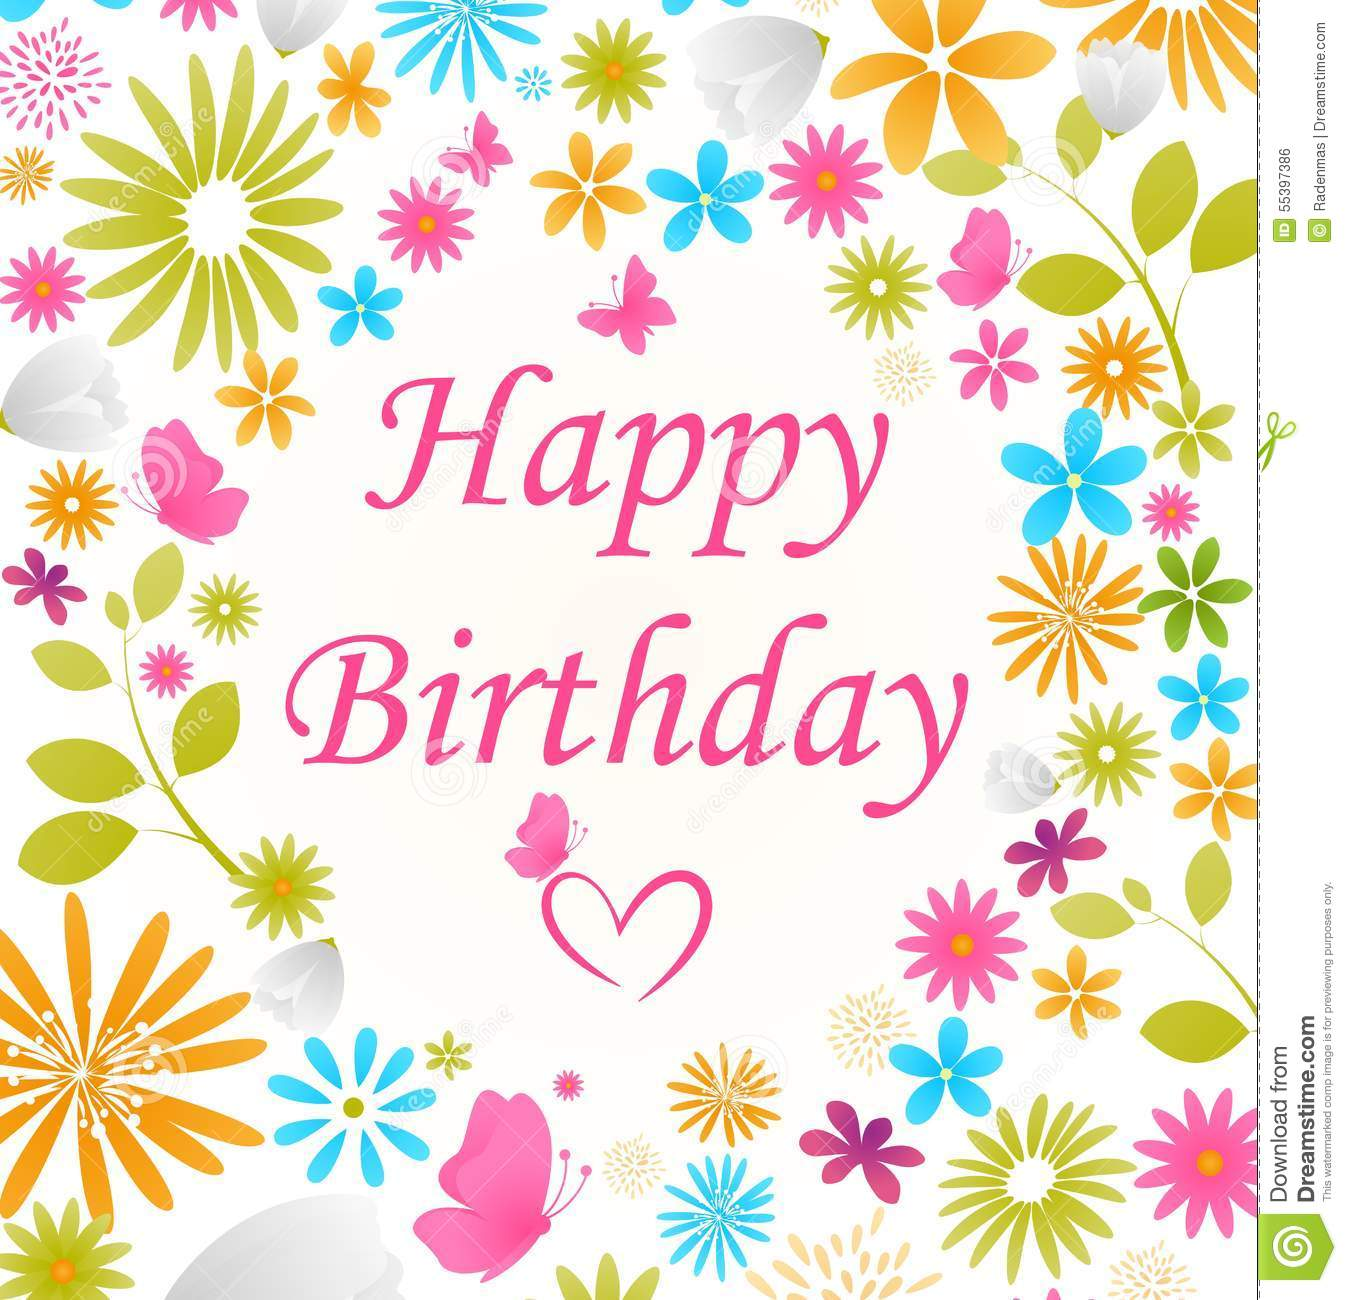 Beautiful Birthday Card Stock Vector - Image: 55397386